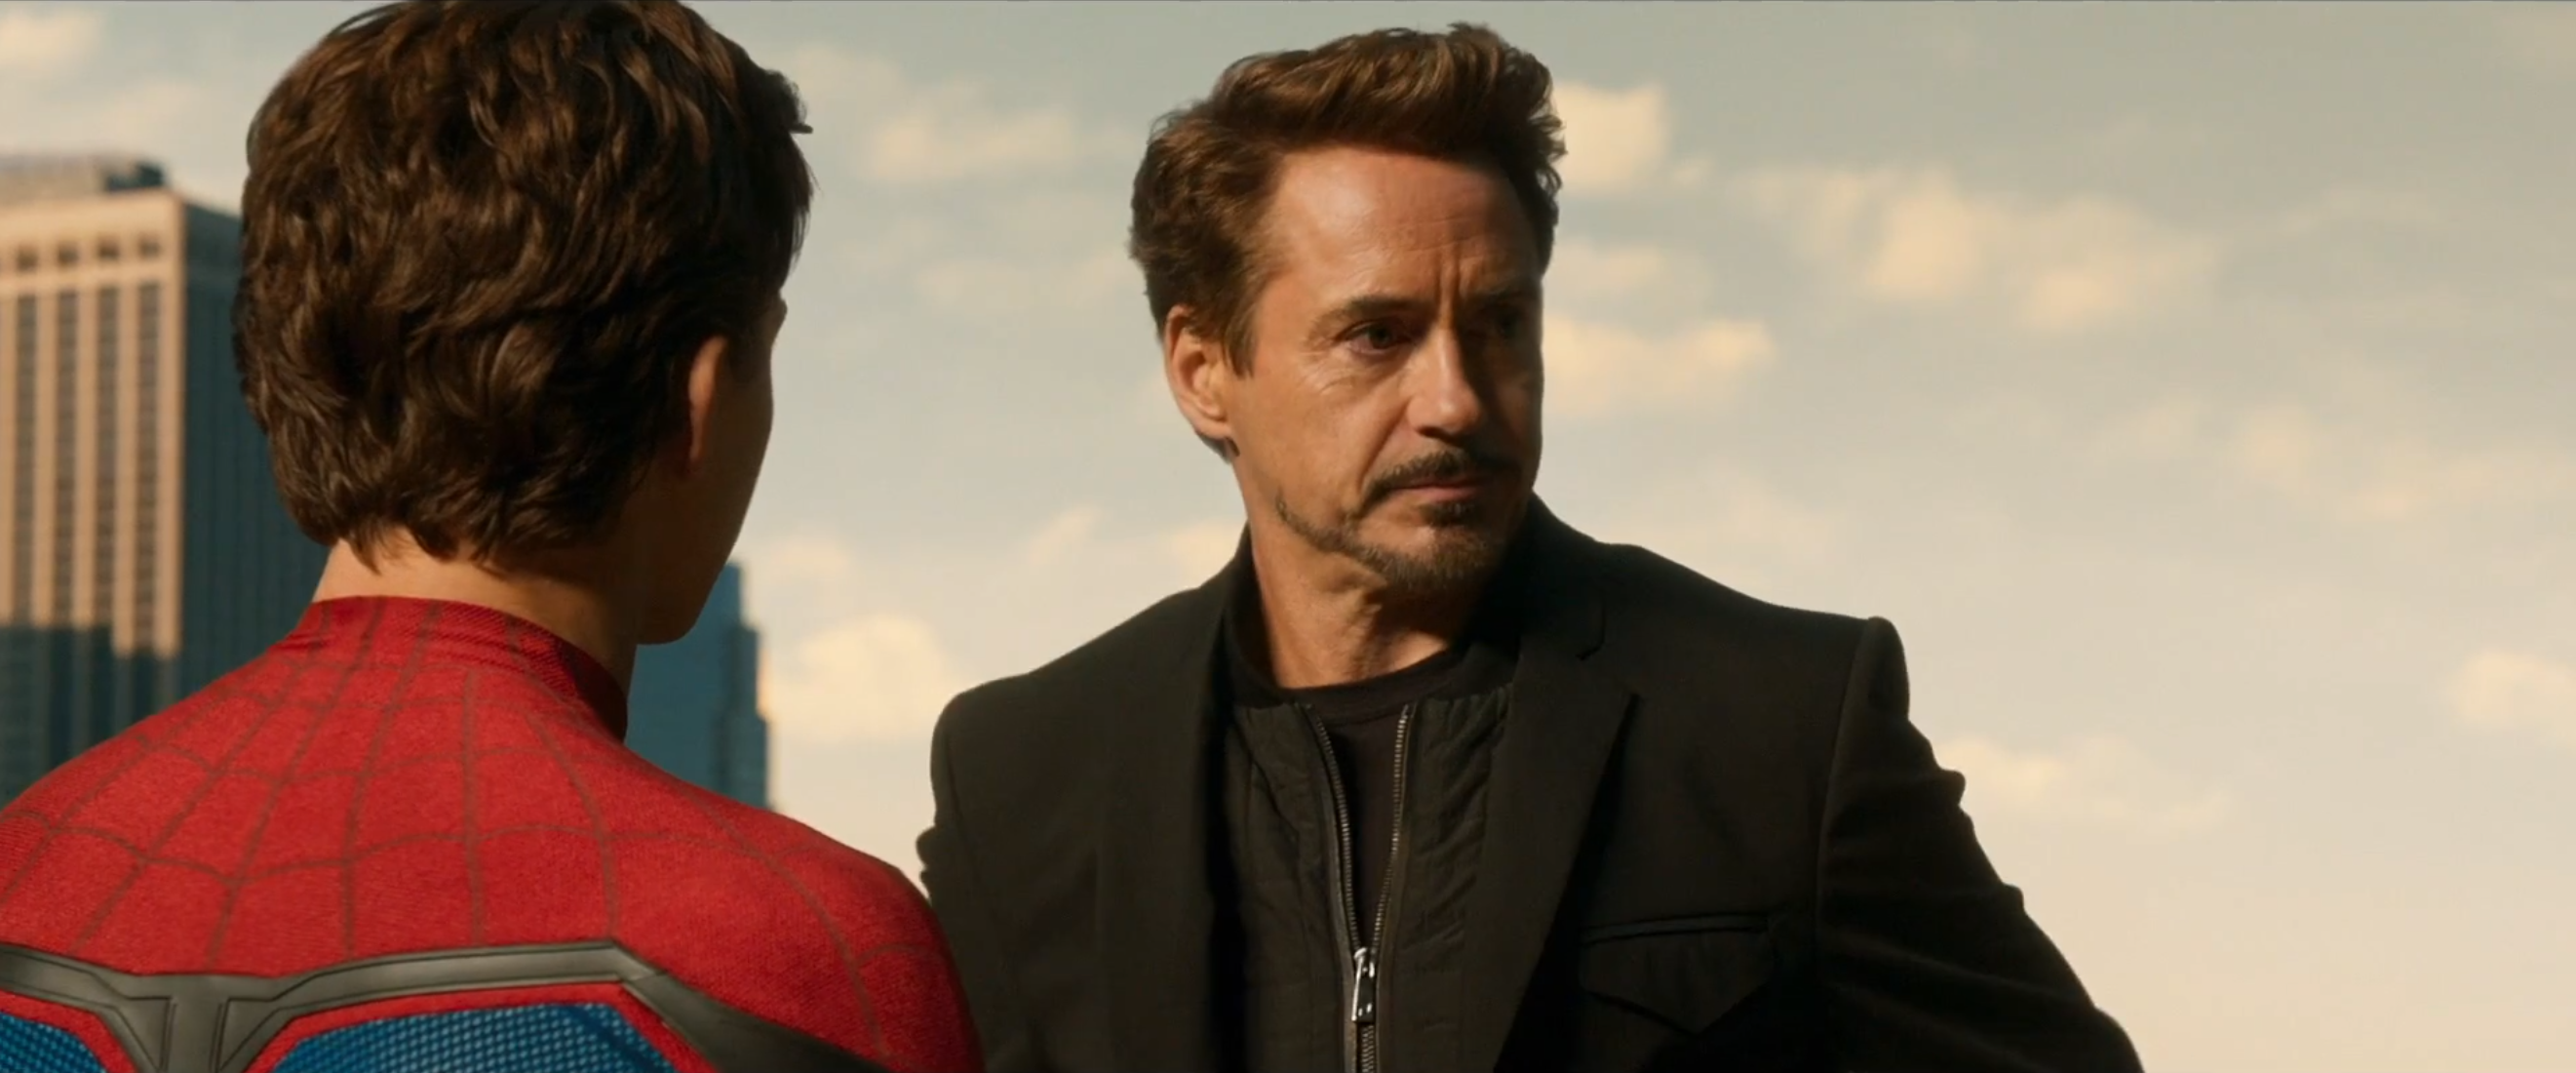 Spider-Man: Homecoming: Tom Holland e Robert Downey Jr. nel nuovo trailer del film